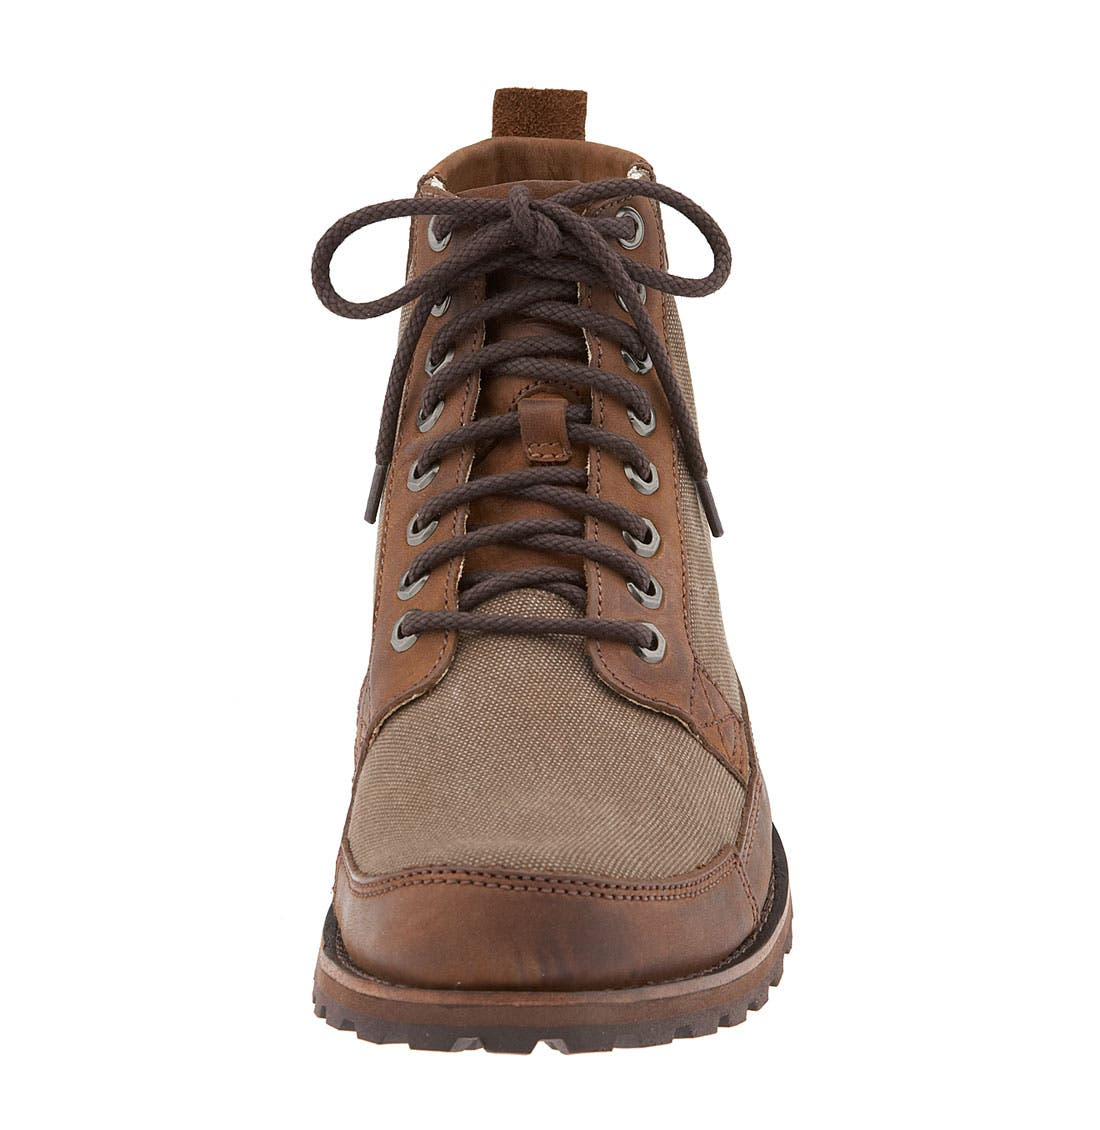 Earthkeepers<sup>®</sup> Lace-Up Boot,                             Alternate thumbnail 4, color,                             214